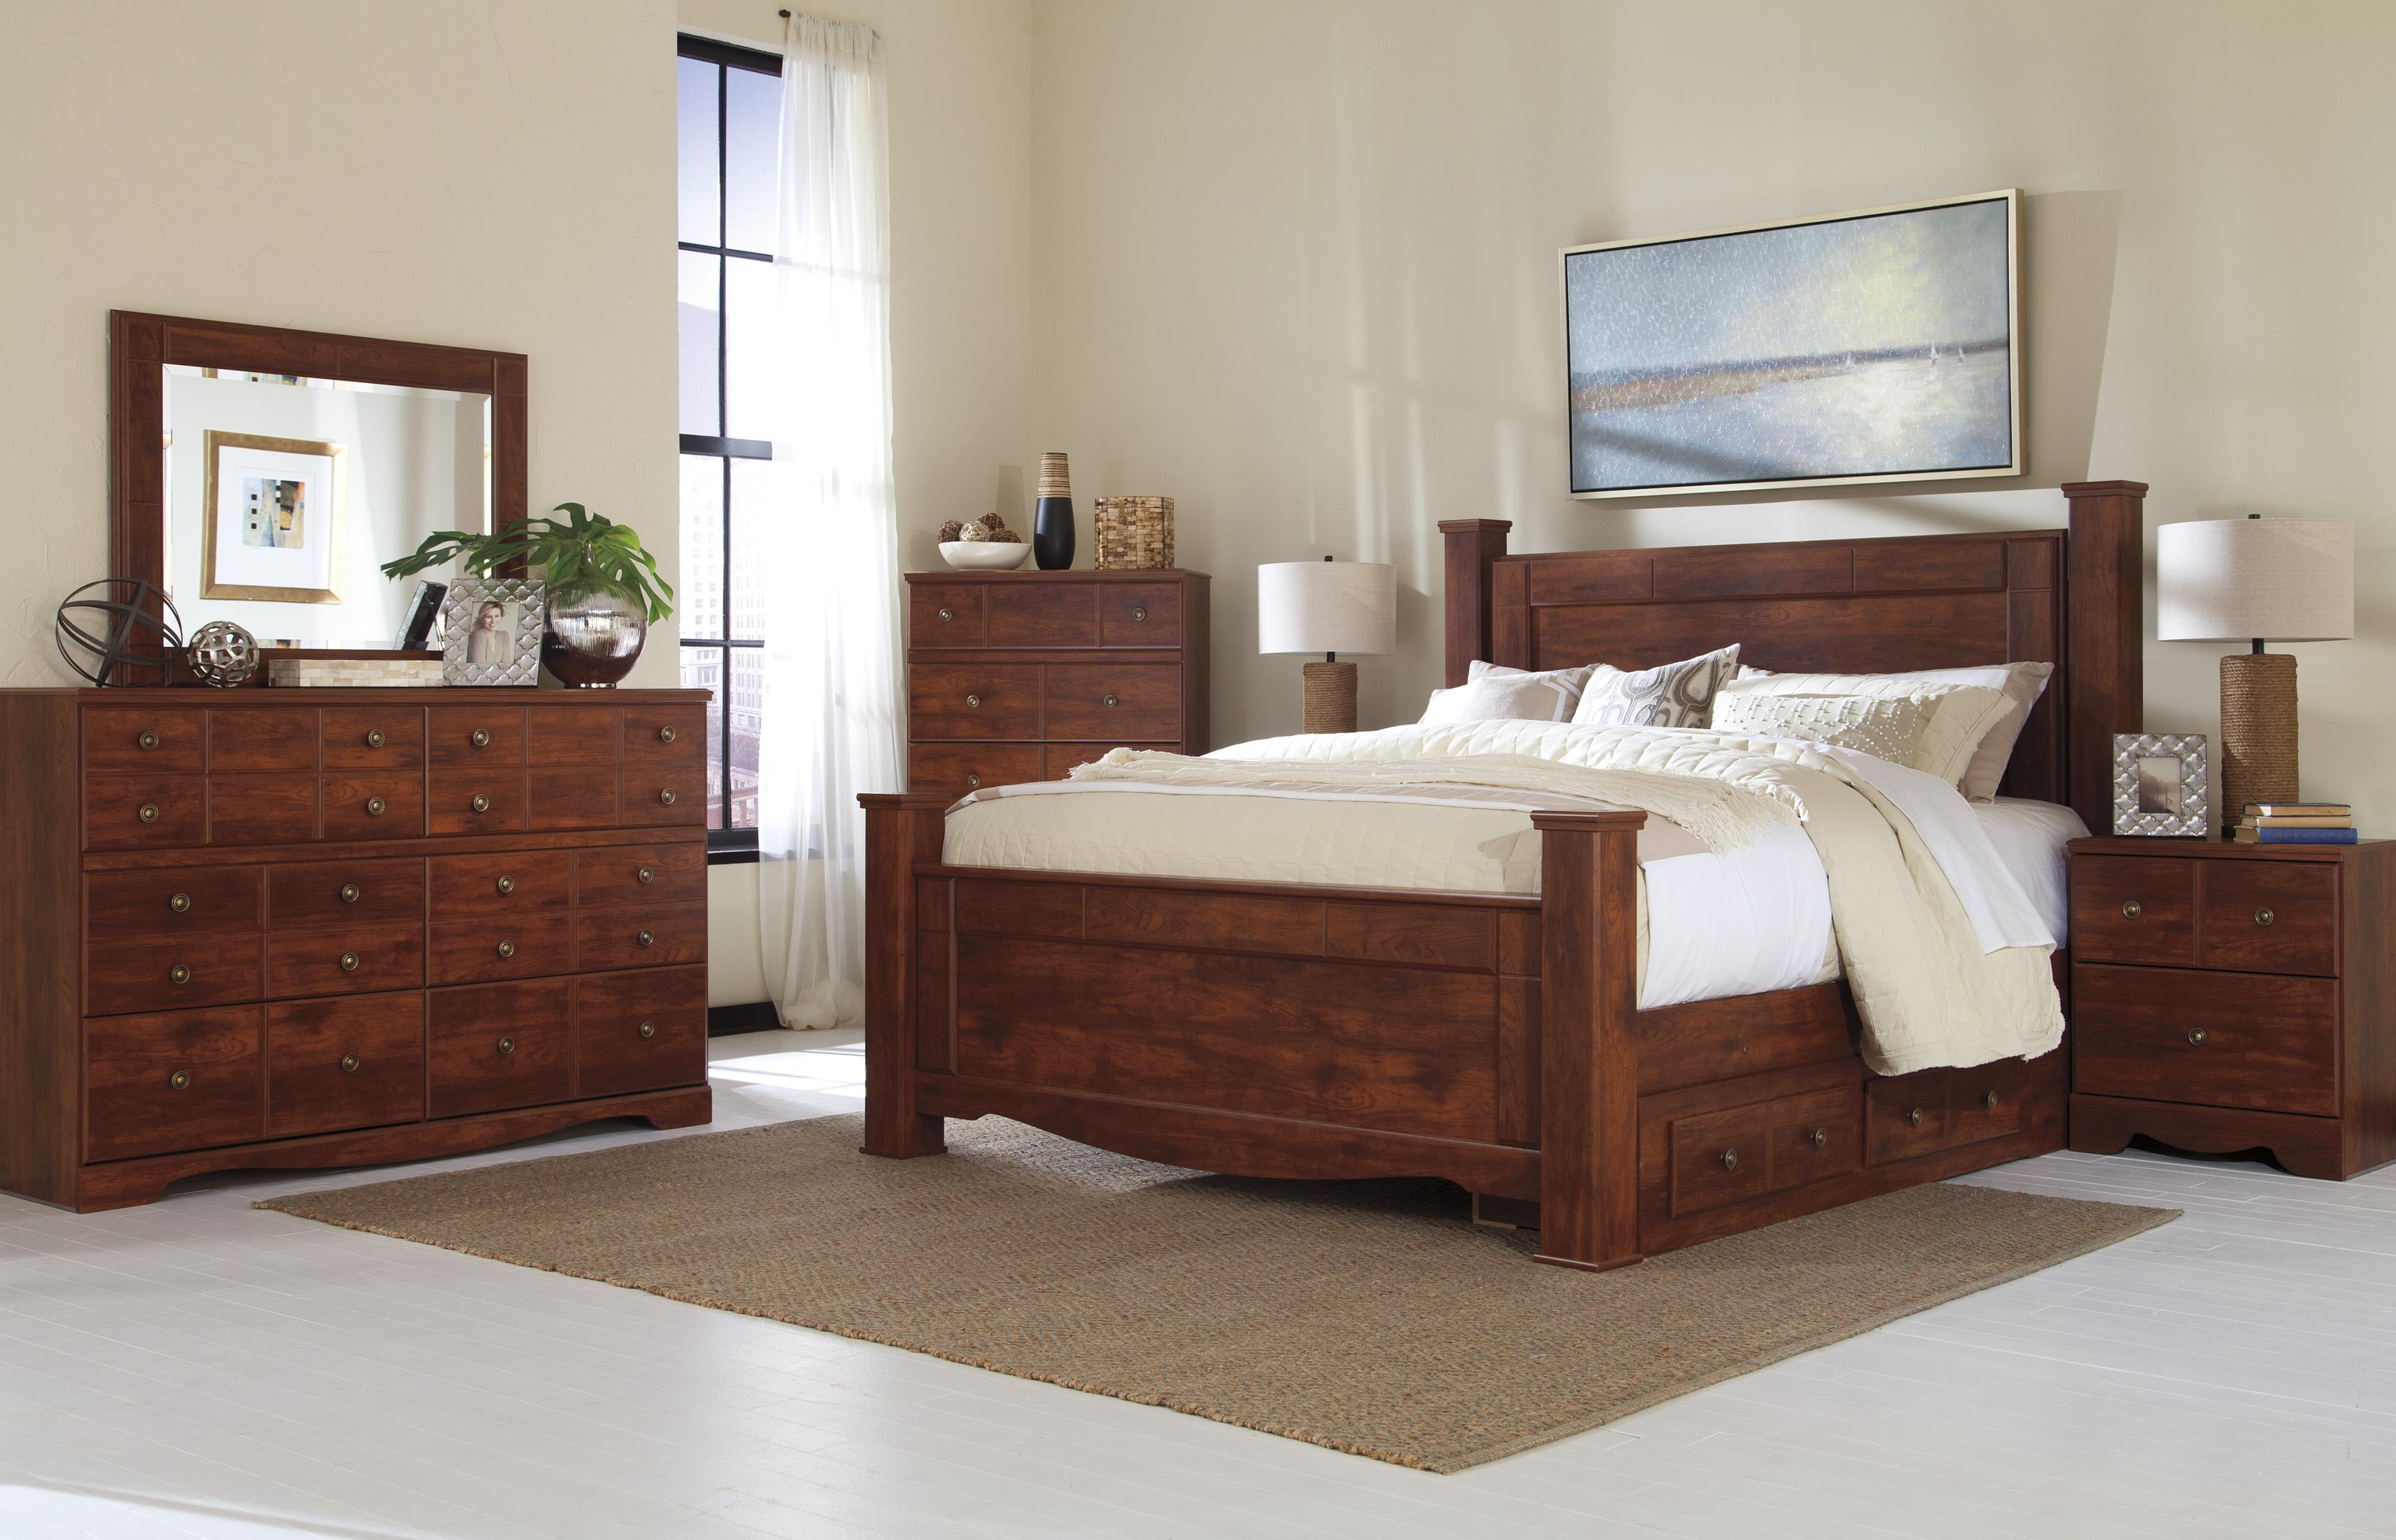 Signature Design by Ashley Brittberg King Bedroom Group - Item Number: B265 K Bedroom Group 1